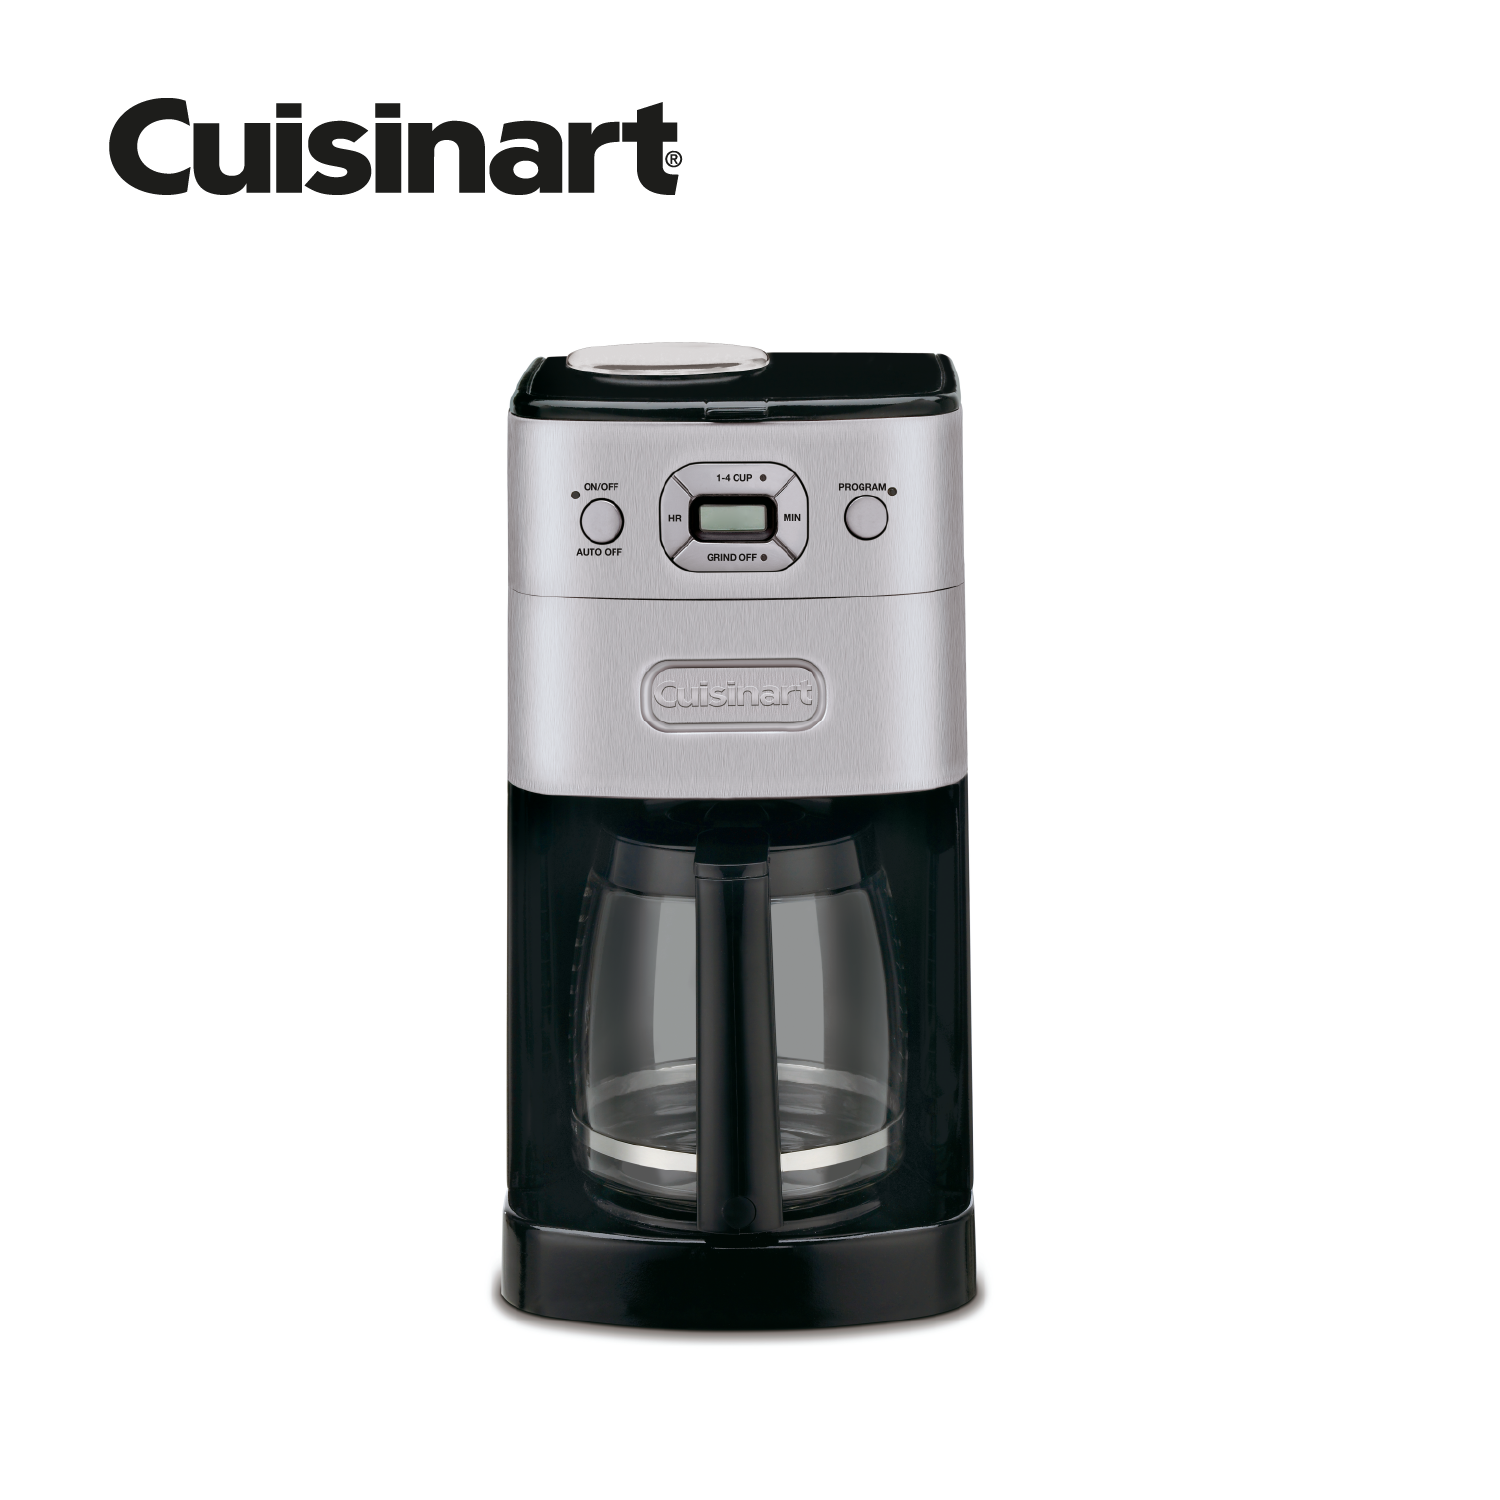 Cuisinart Grind & Brew™ 12 Cup Automatic CoffeeMaker [Coming Soon]